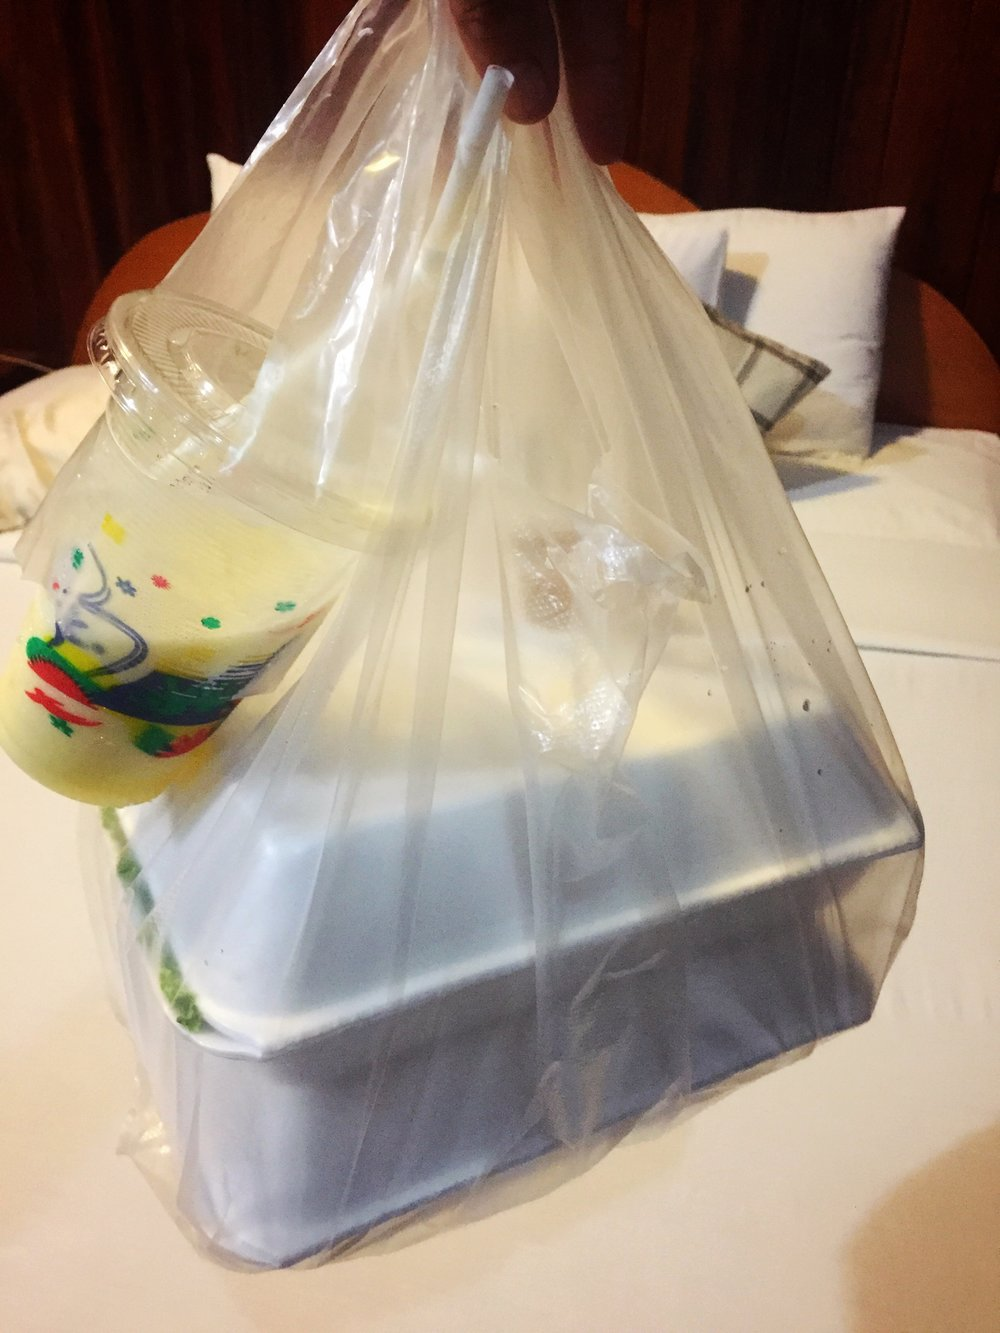 an environmental catastrophe in plastic: dinner to go